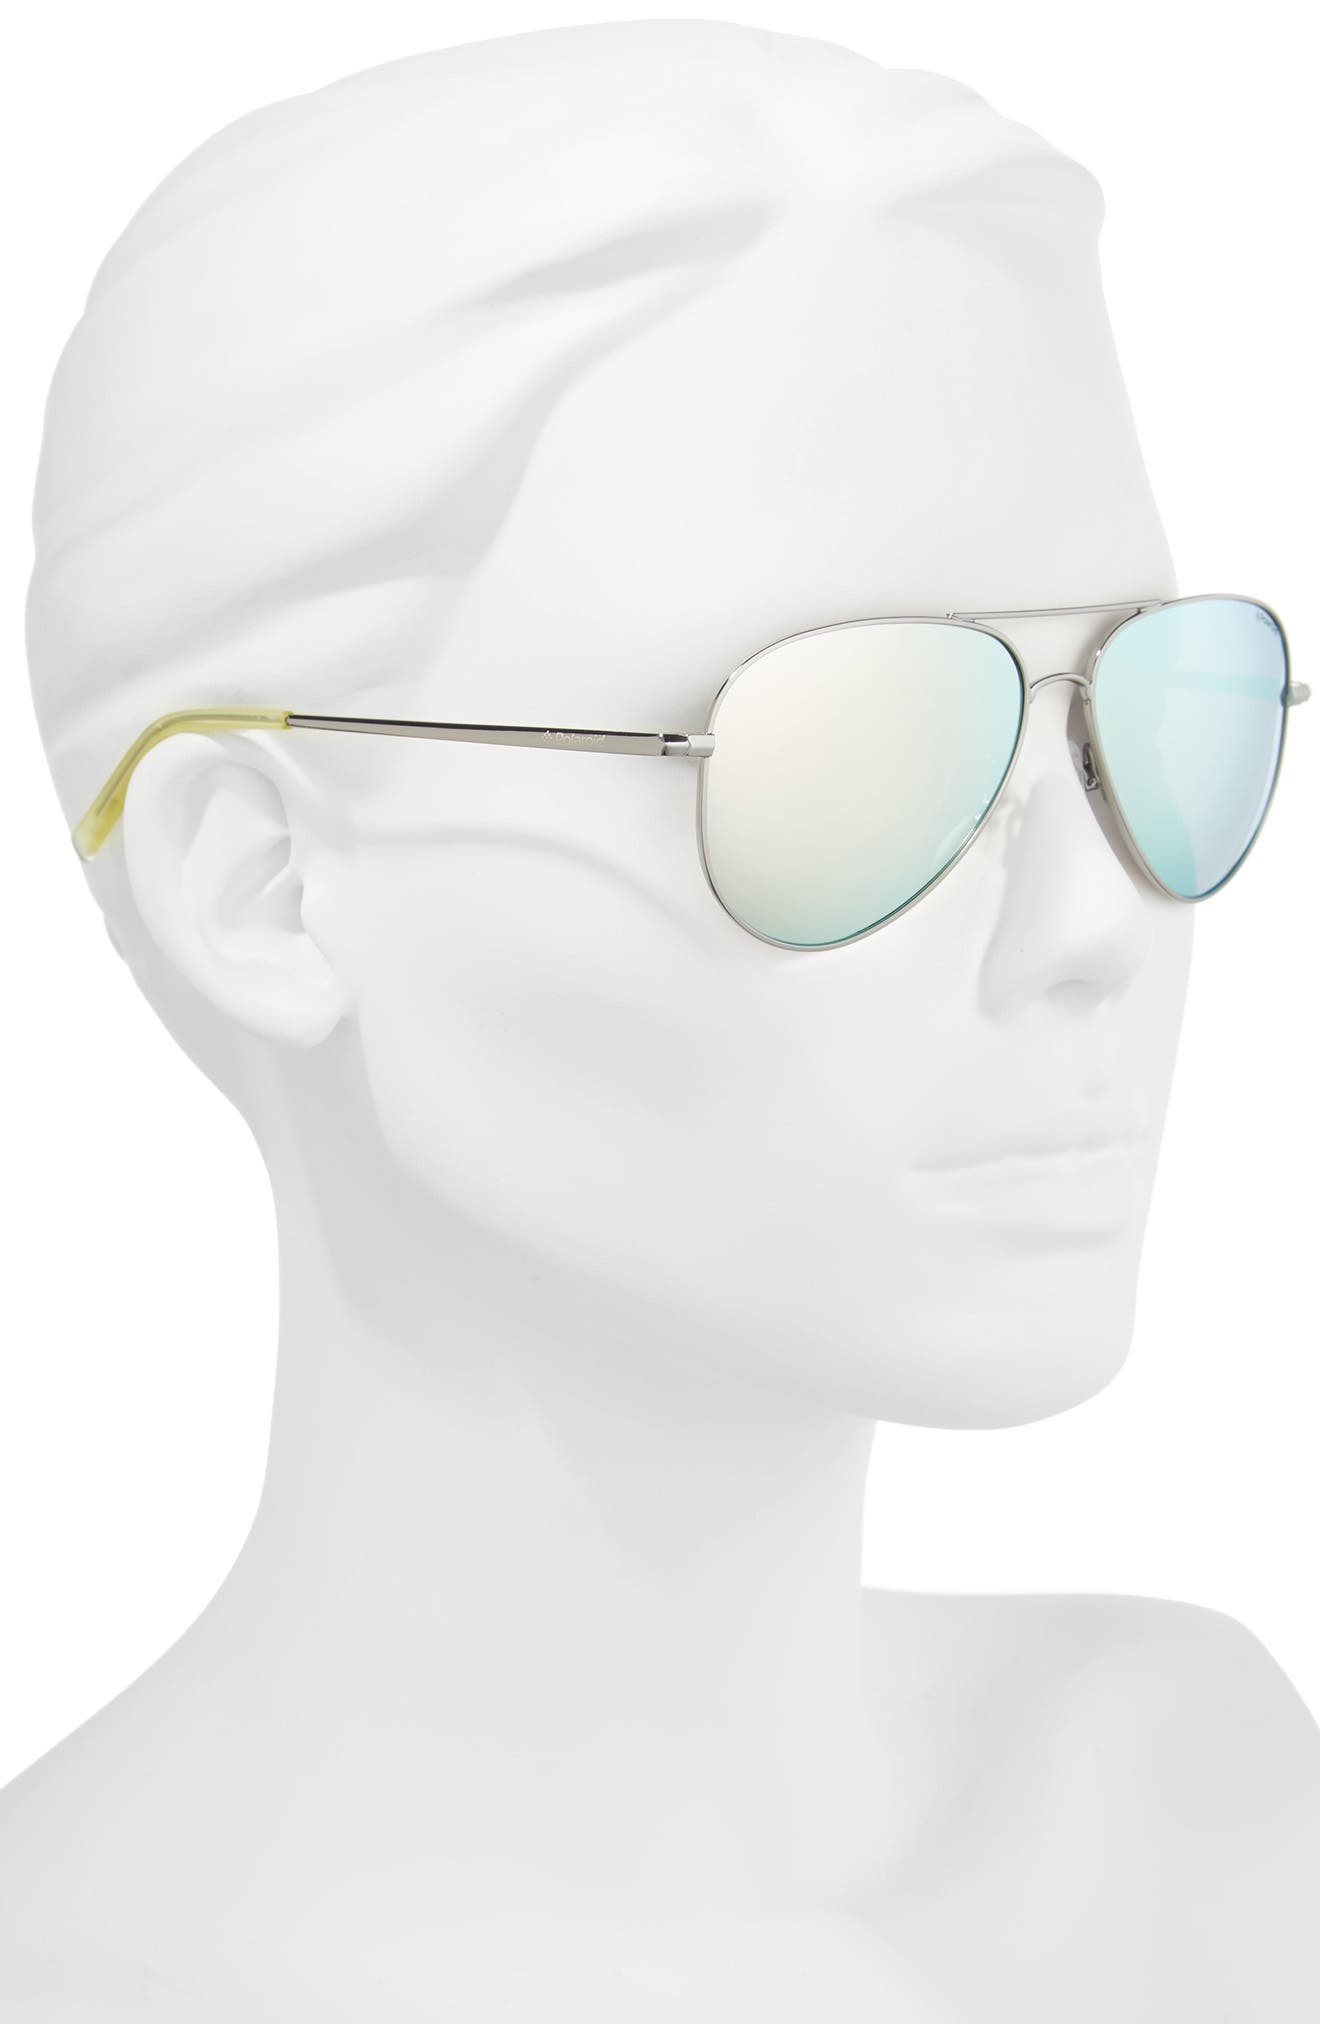 56mm Polarized Aviator Sunglasses,                             Alternate thumbnail 2, color,                             043